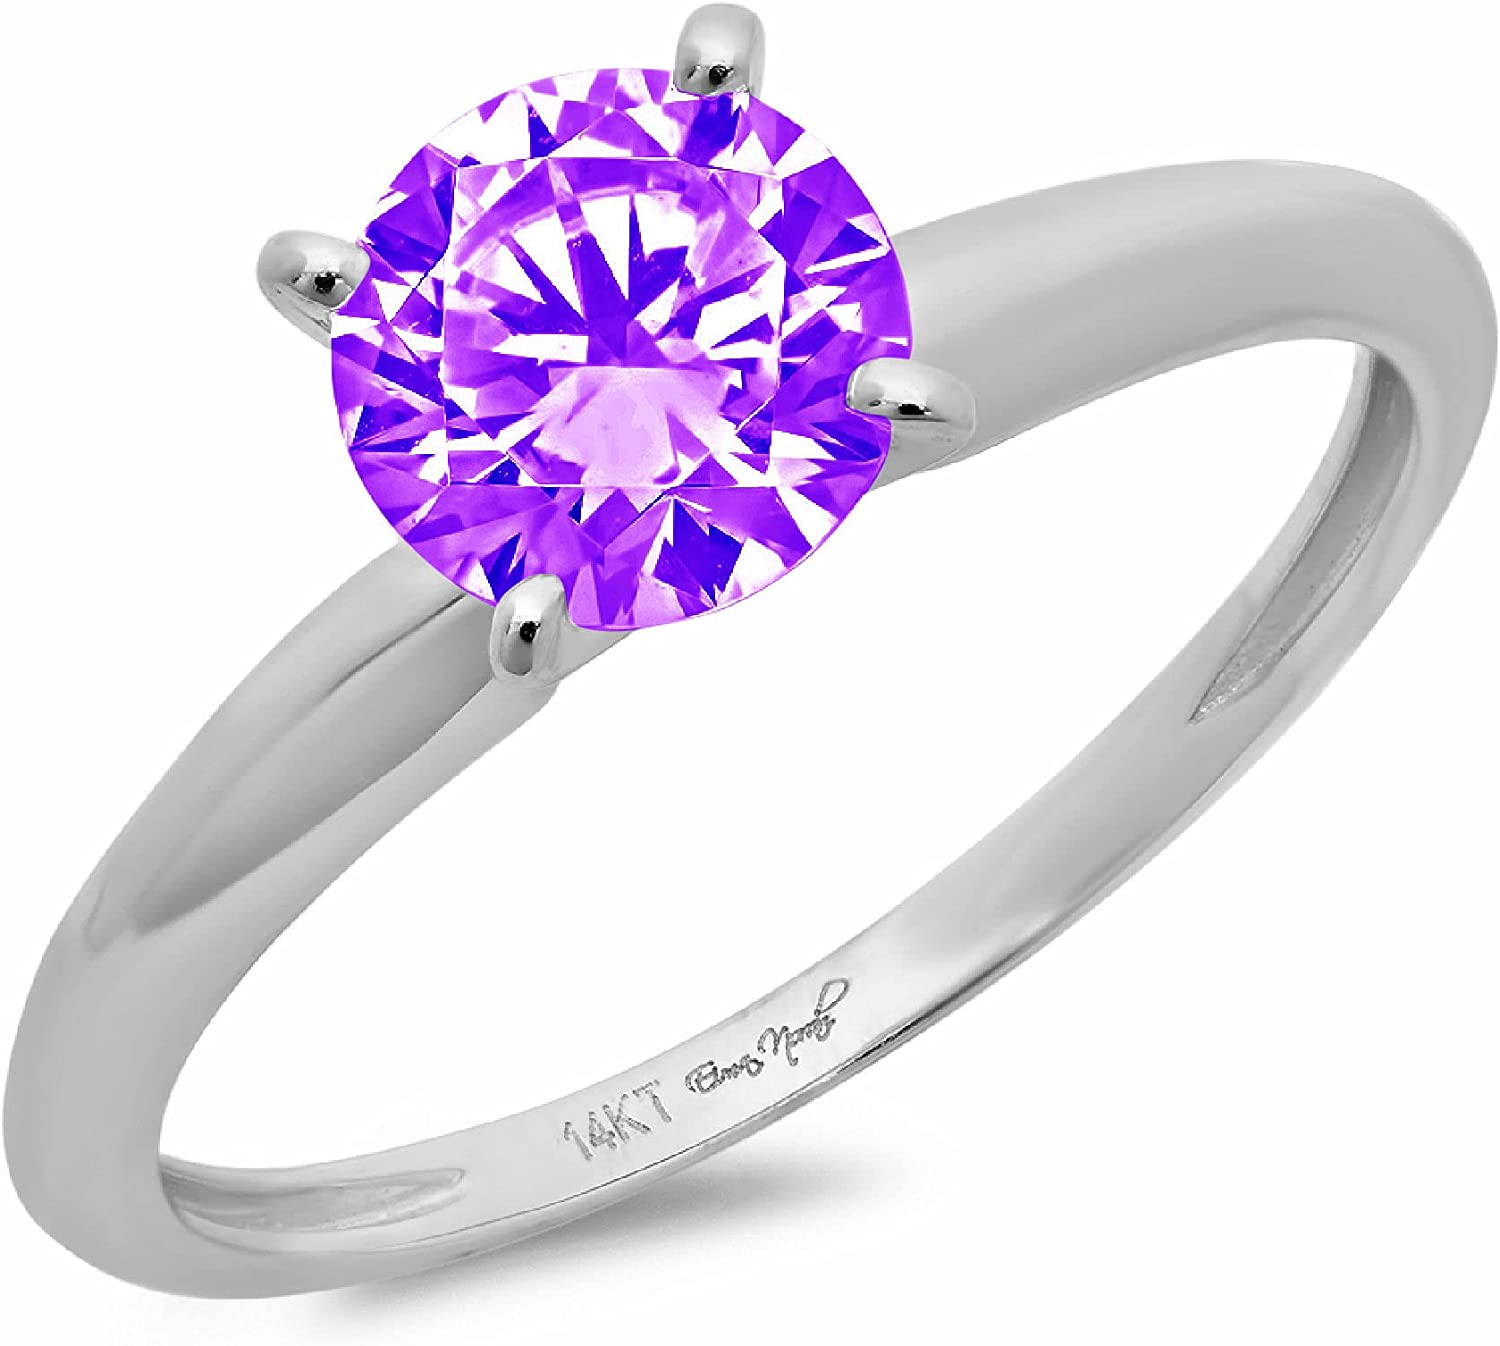 Clara Pucci 3.0 ct Brilliant Round Cut Solitaire Natural Purple Amethyst Gemstone 4-Prong Engagement Wedding Bridal Promise Anniversary Ring in Solid 18K White Gold for Women